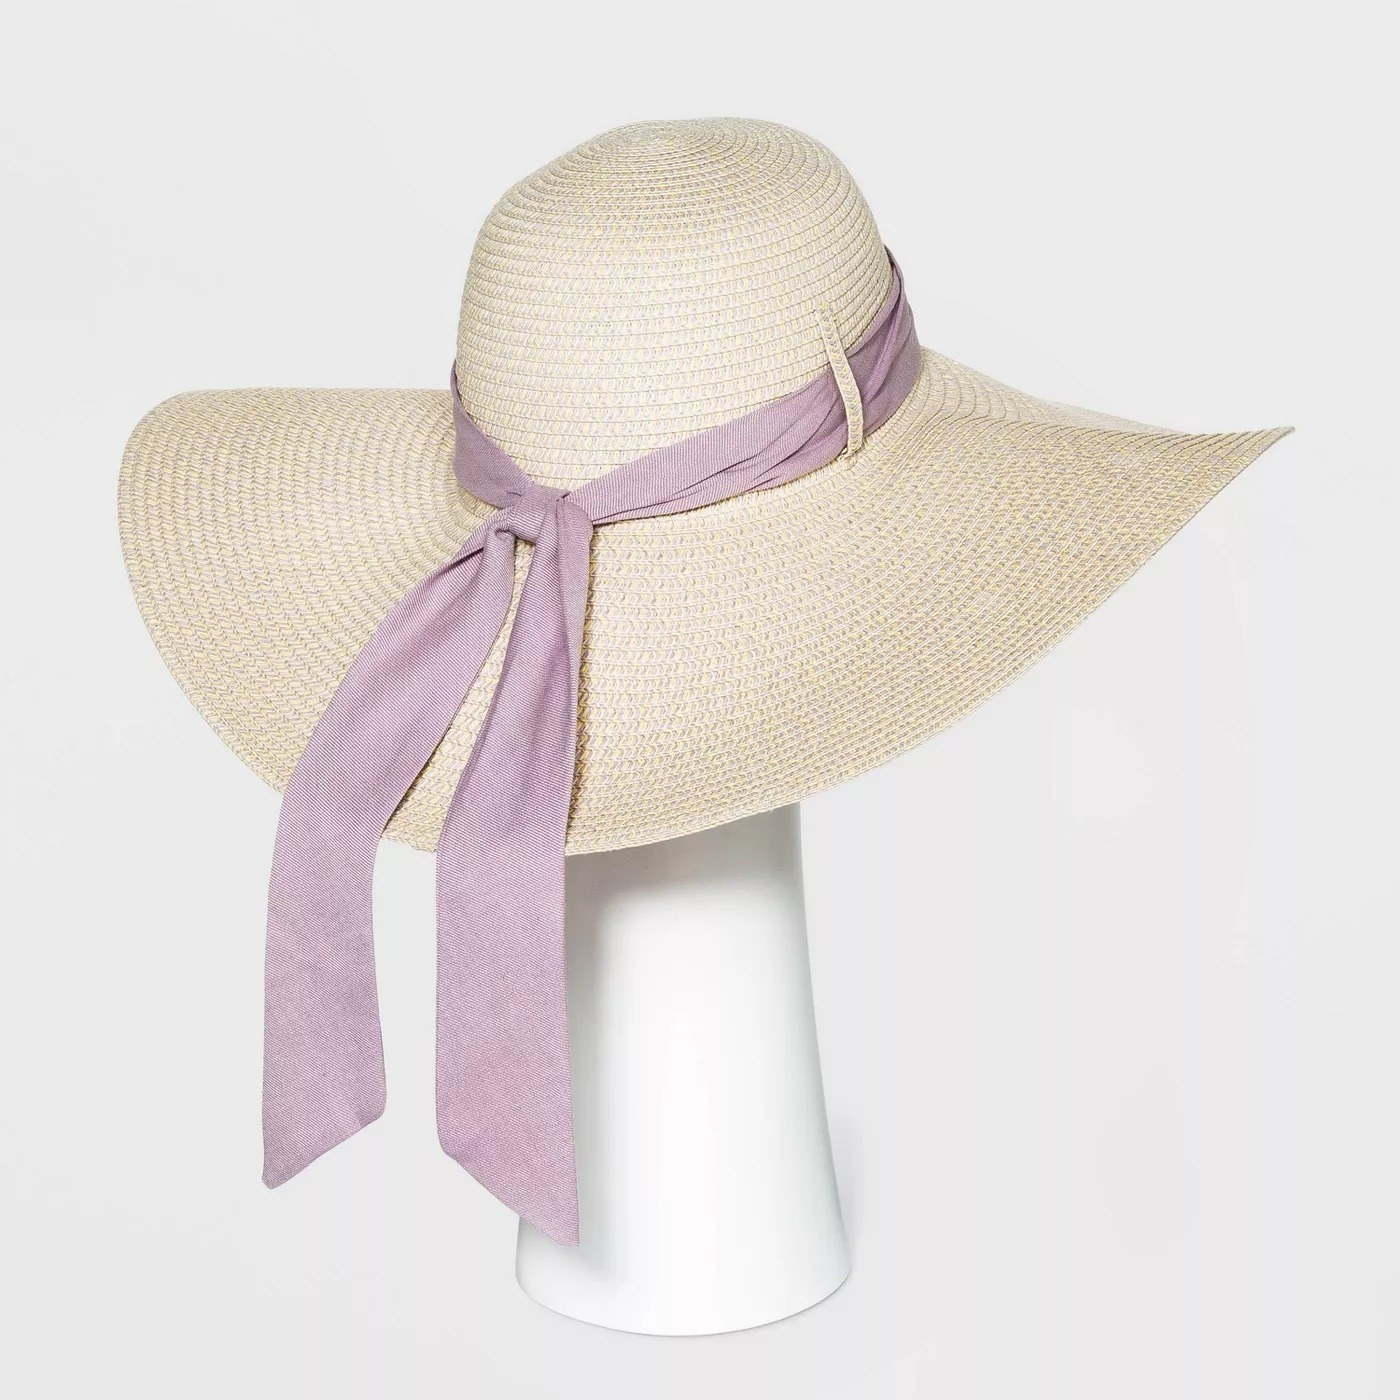 Light beige hat with straw-like texture with a removable lavender bow